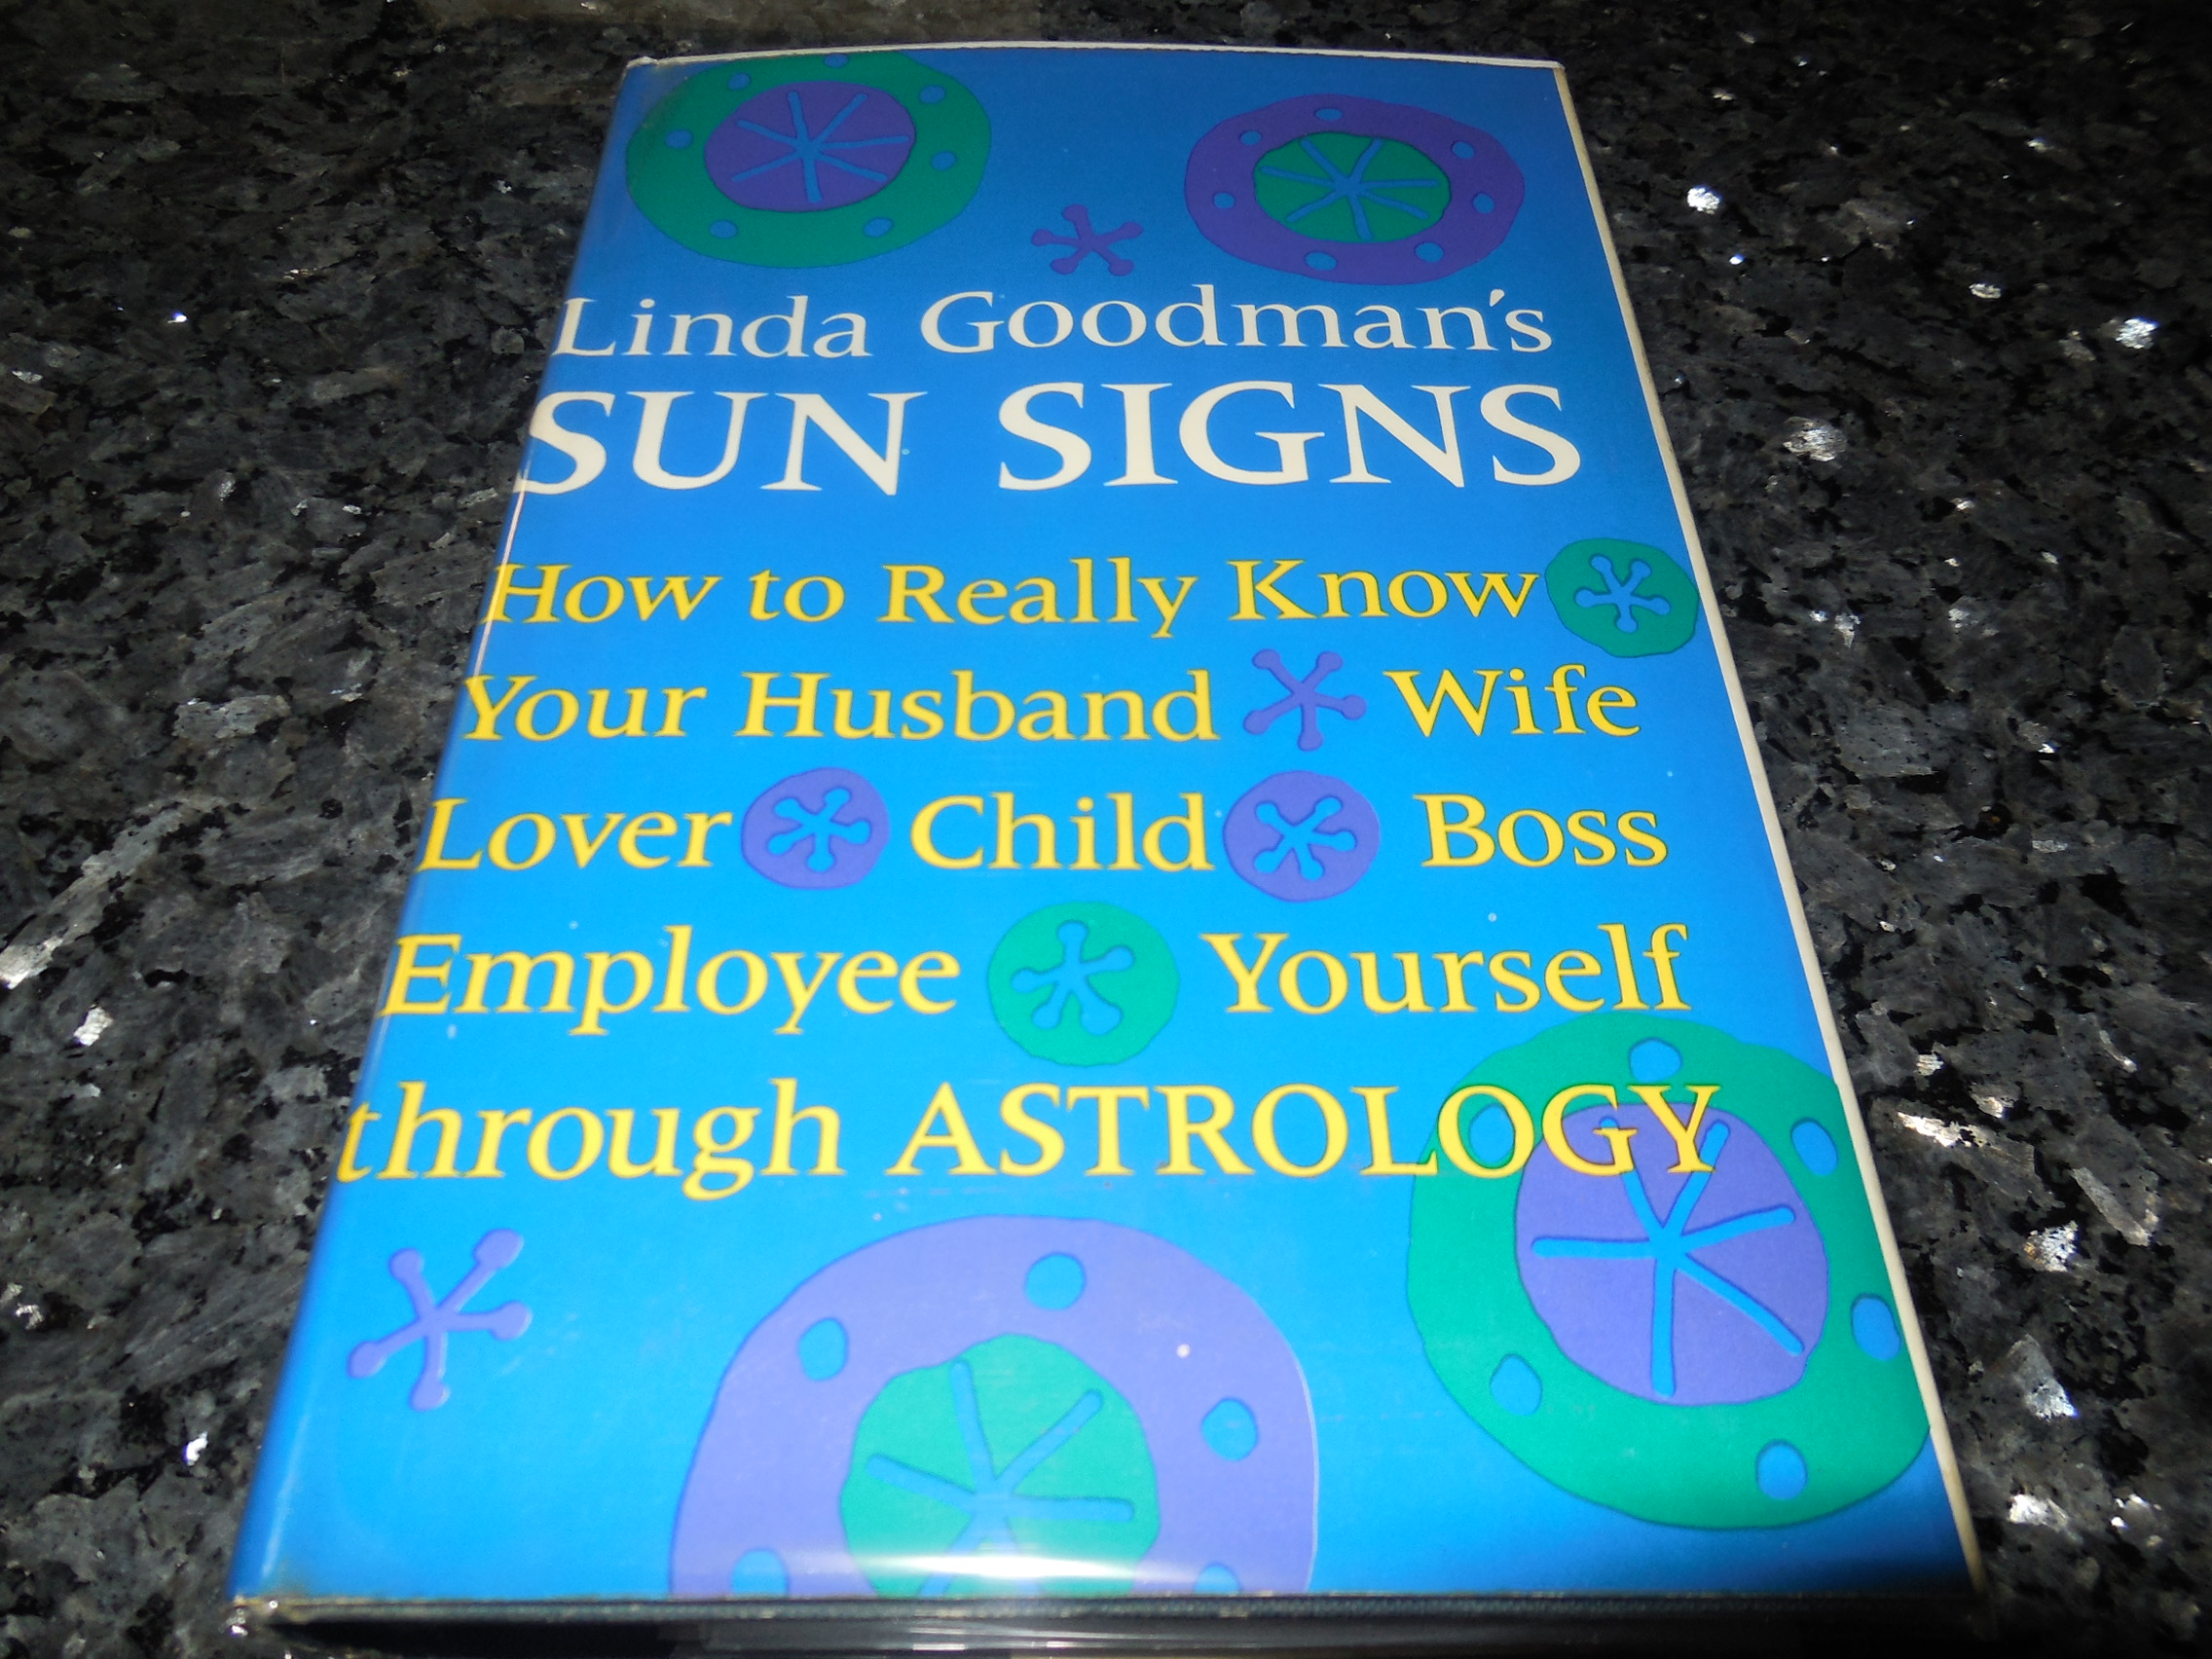 Image for Linda Goodman's Sun Signs